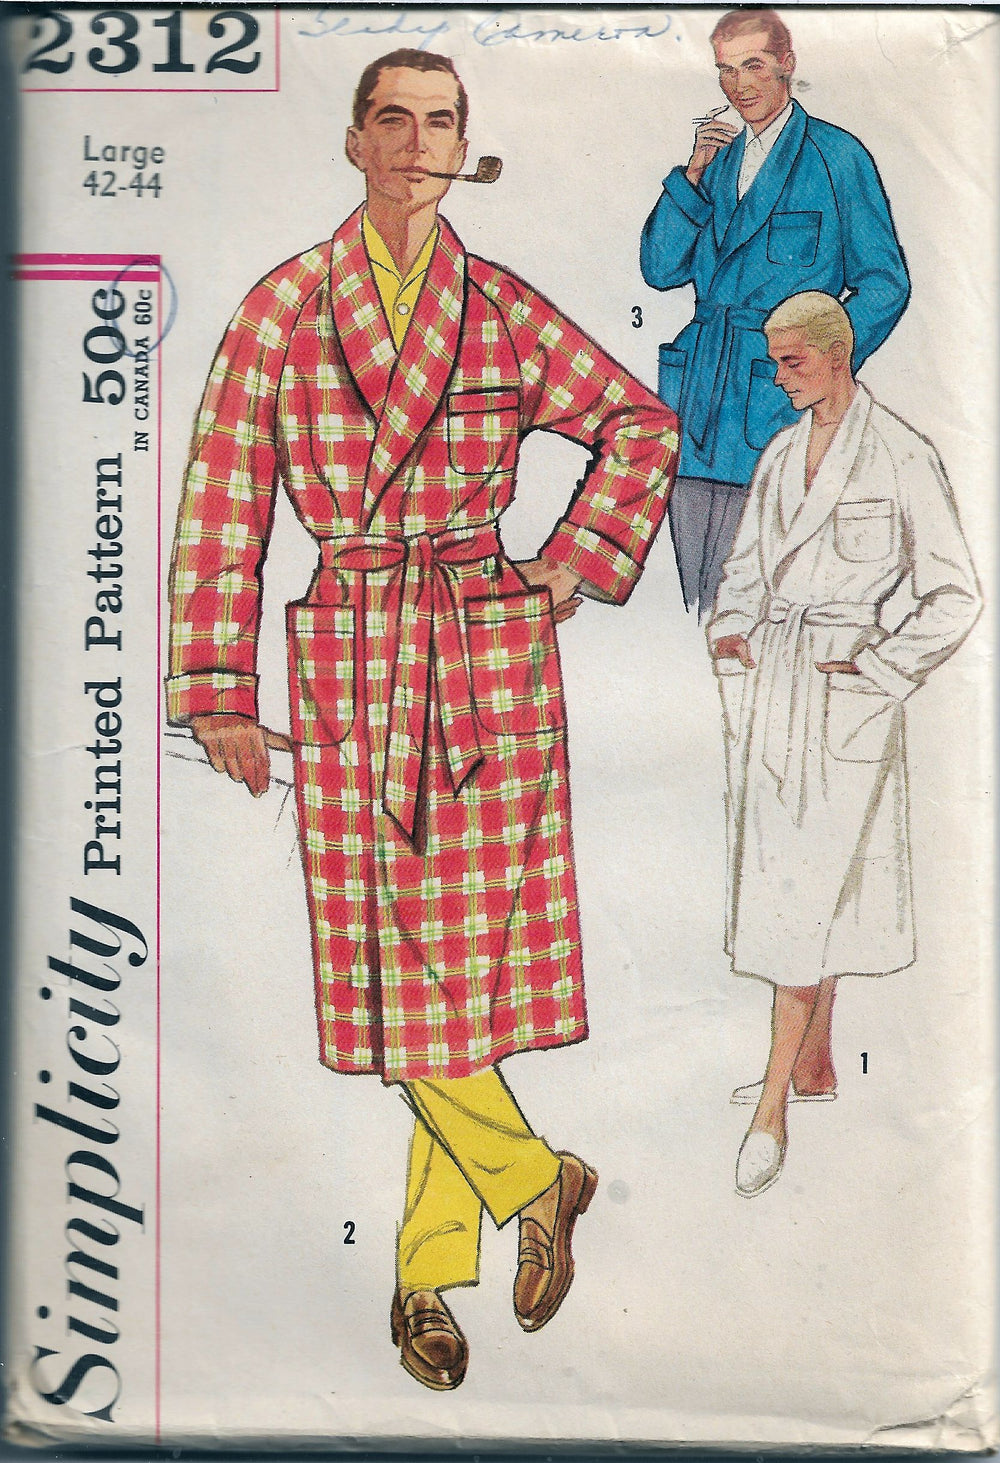 Simplicity 2312 Vintage Sewing Pattern 1950s Mens Robe Lounge Jacket - VintageStitching - Vintage Sewing Patterns